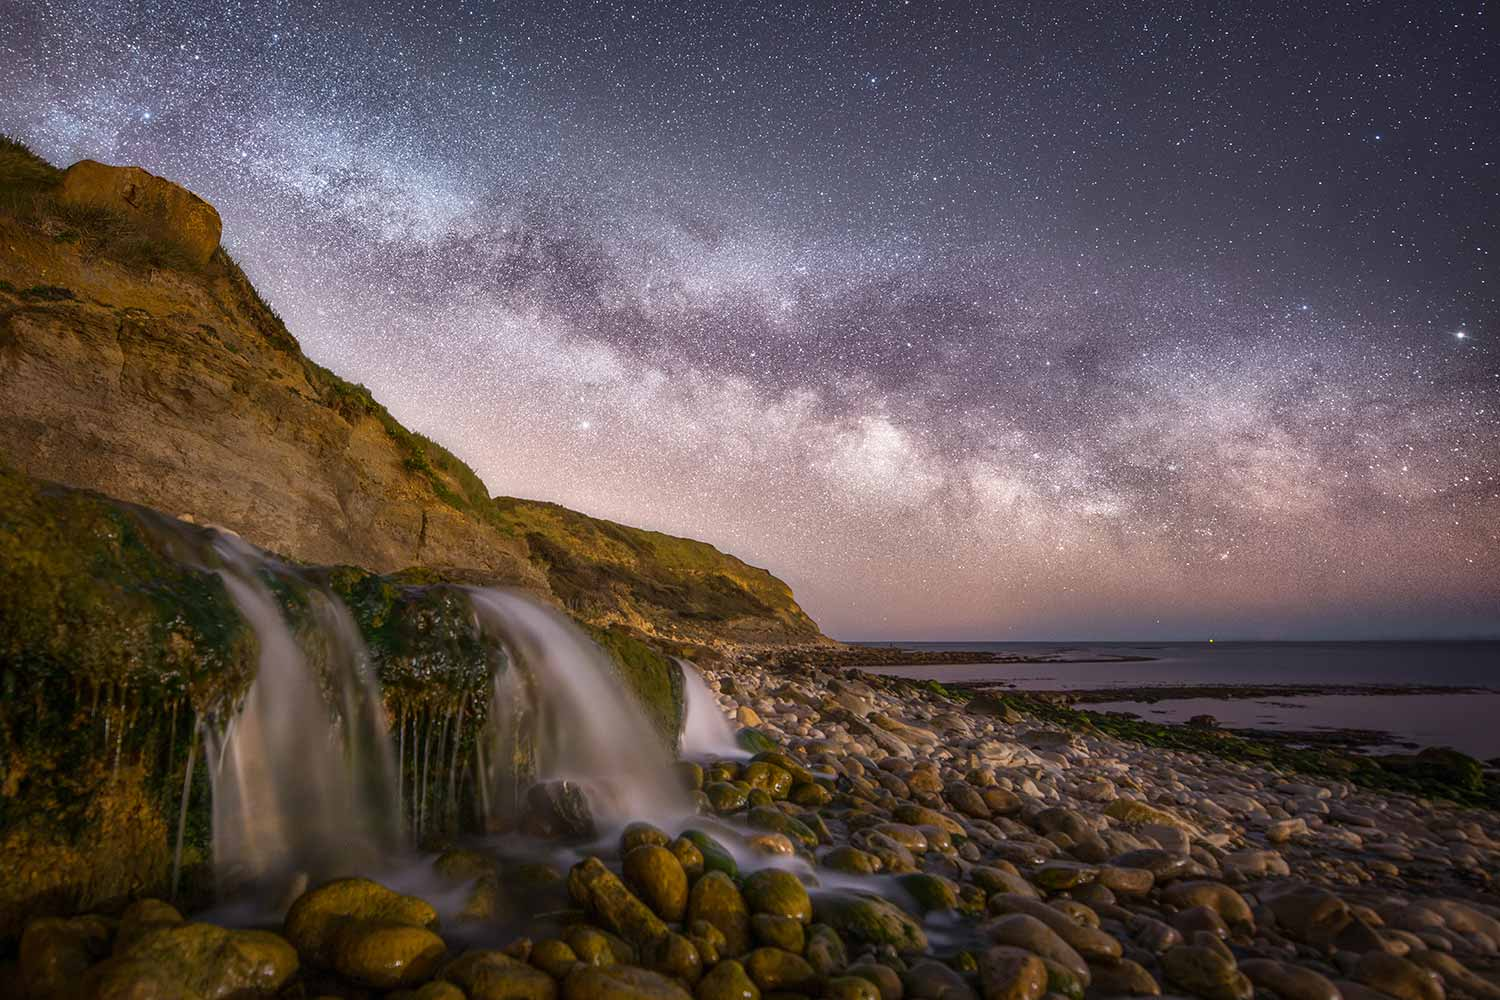 Milky Way Above Osmington Mills Waterfall